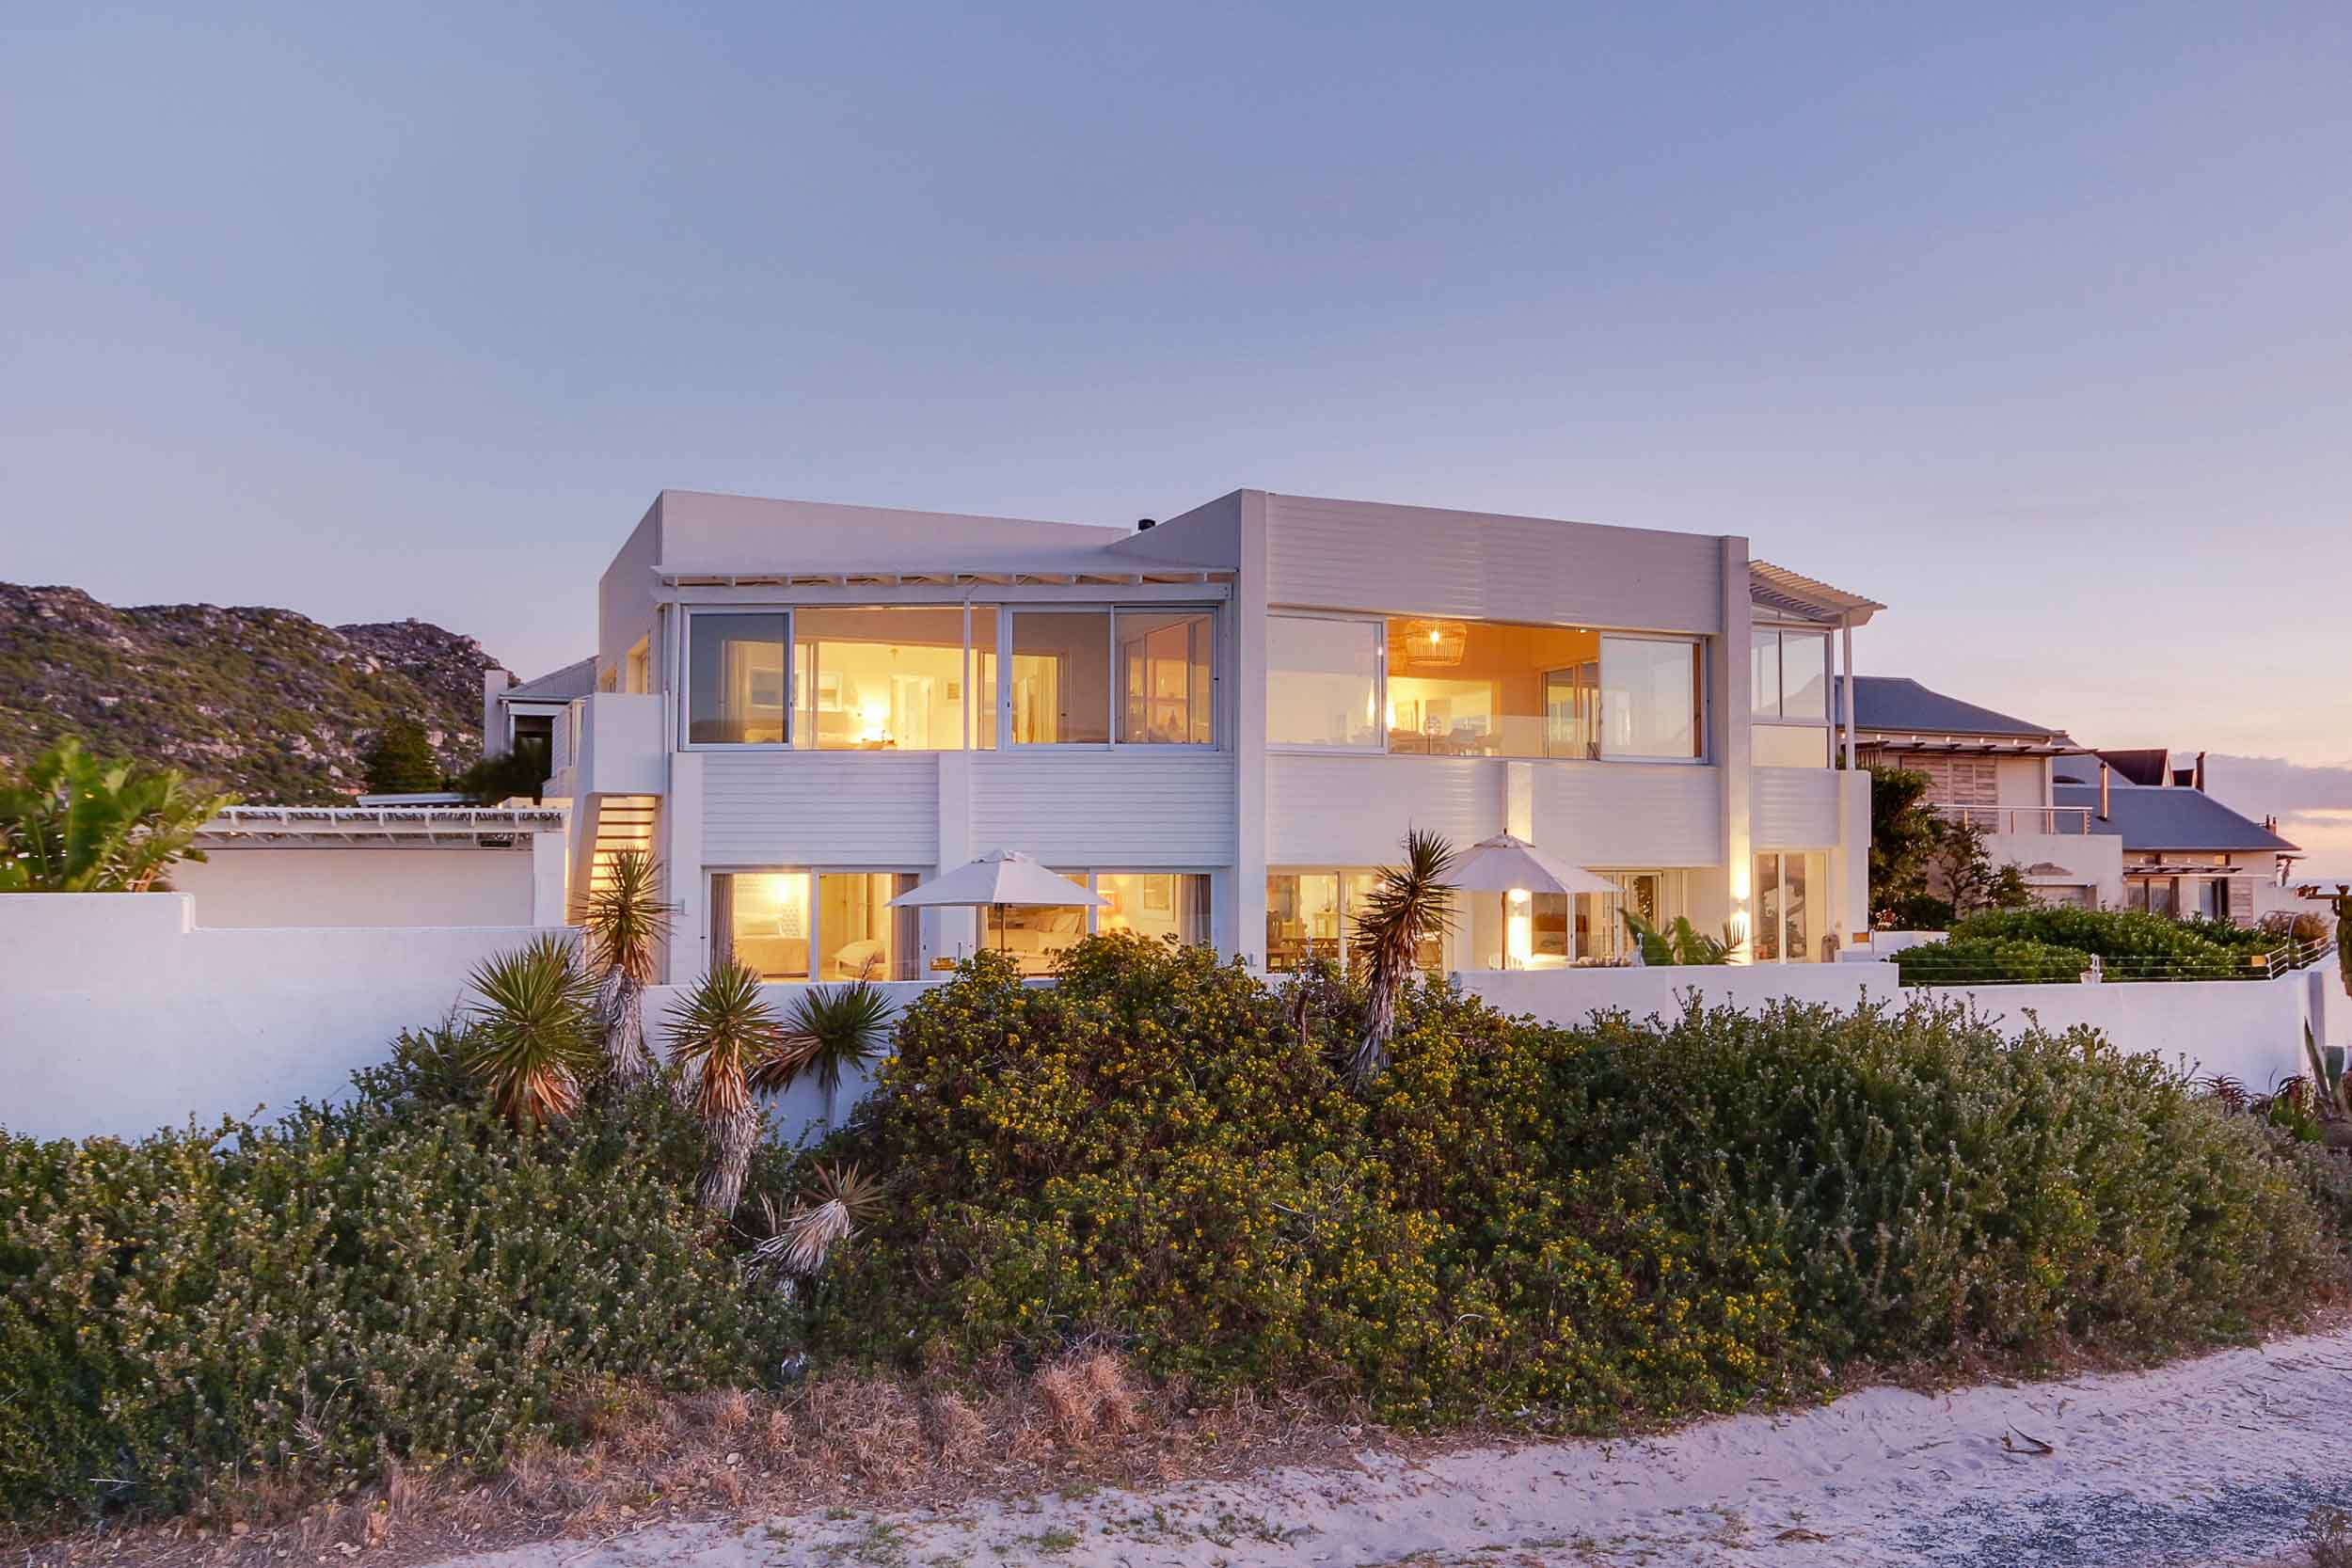 This contemporary retreat on South Africa's Western Cape has an unrivaled beachfront location and plenty of spaces to entertain guests while watching the sunset over Table Mountain and the Atlantic Ocean.